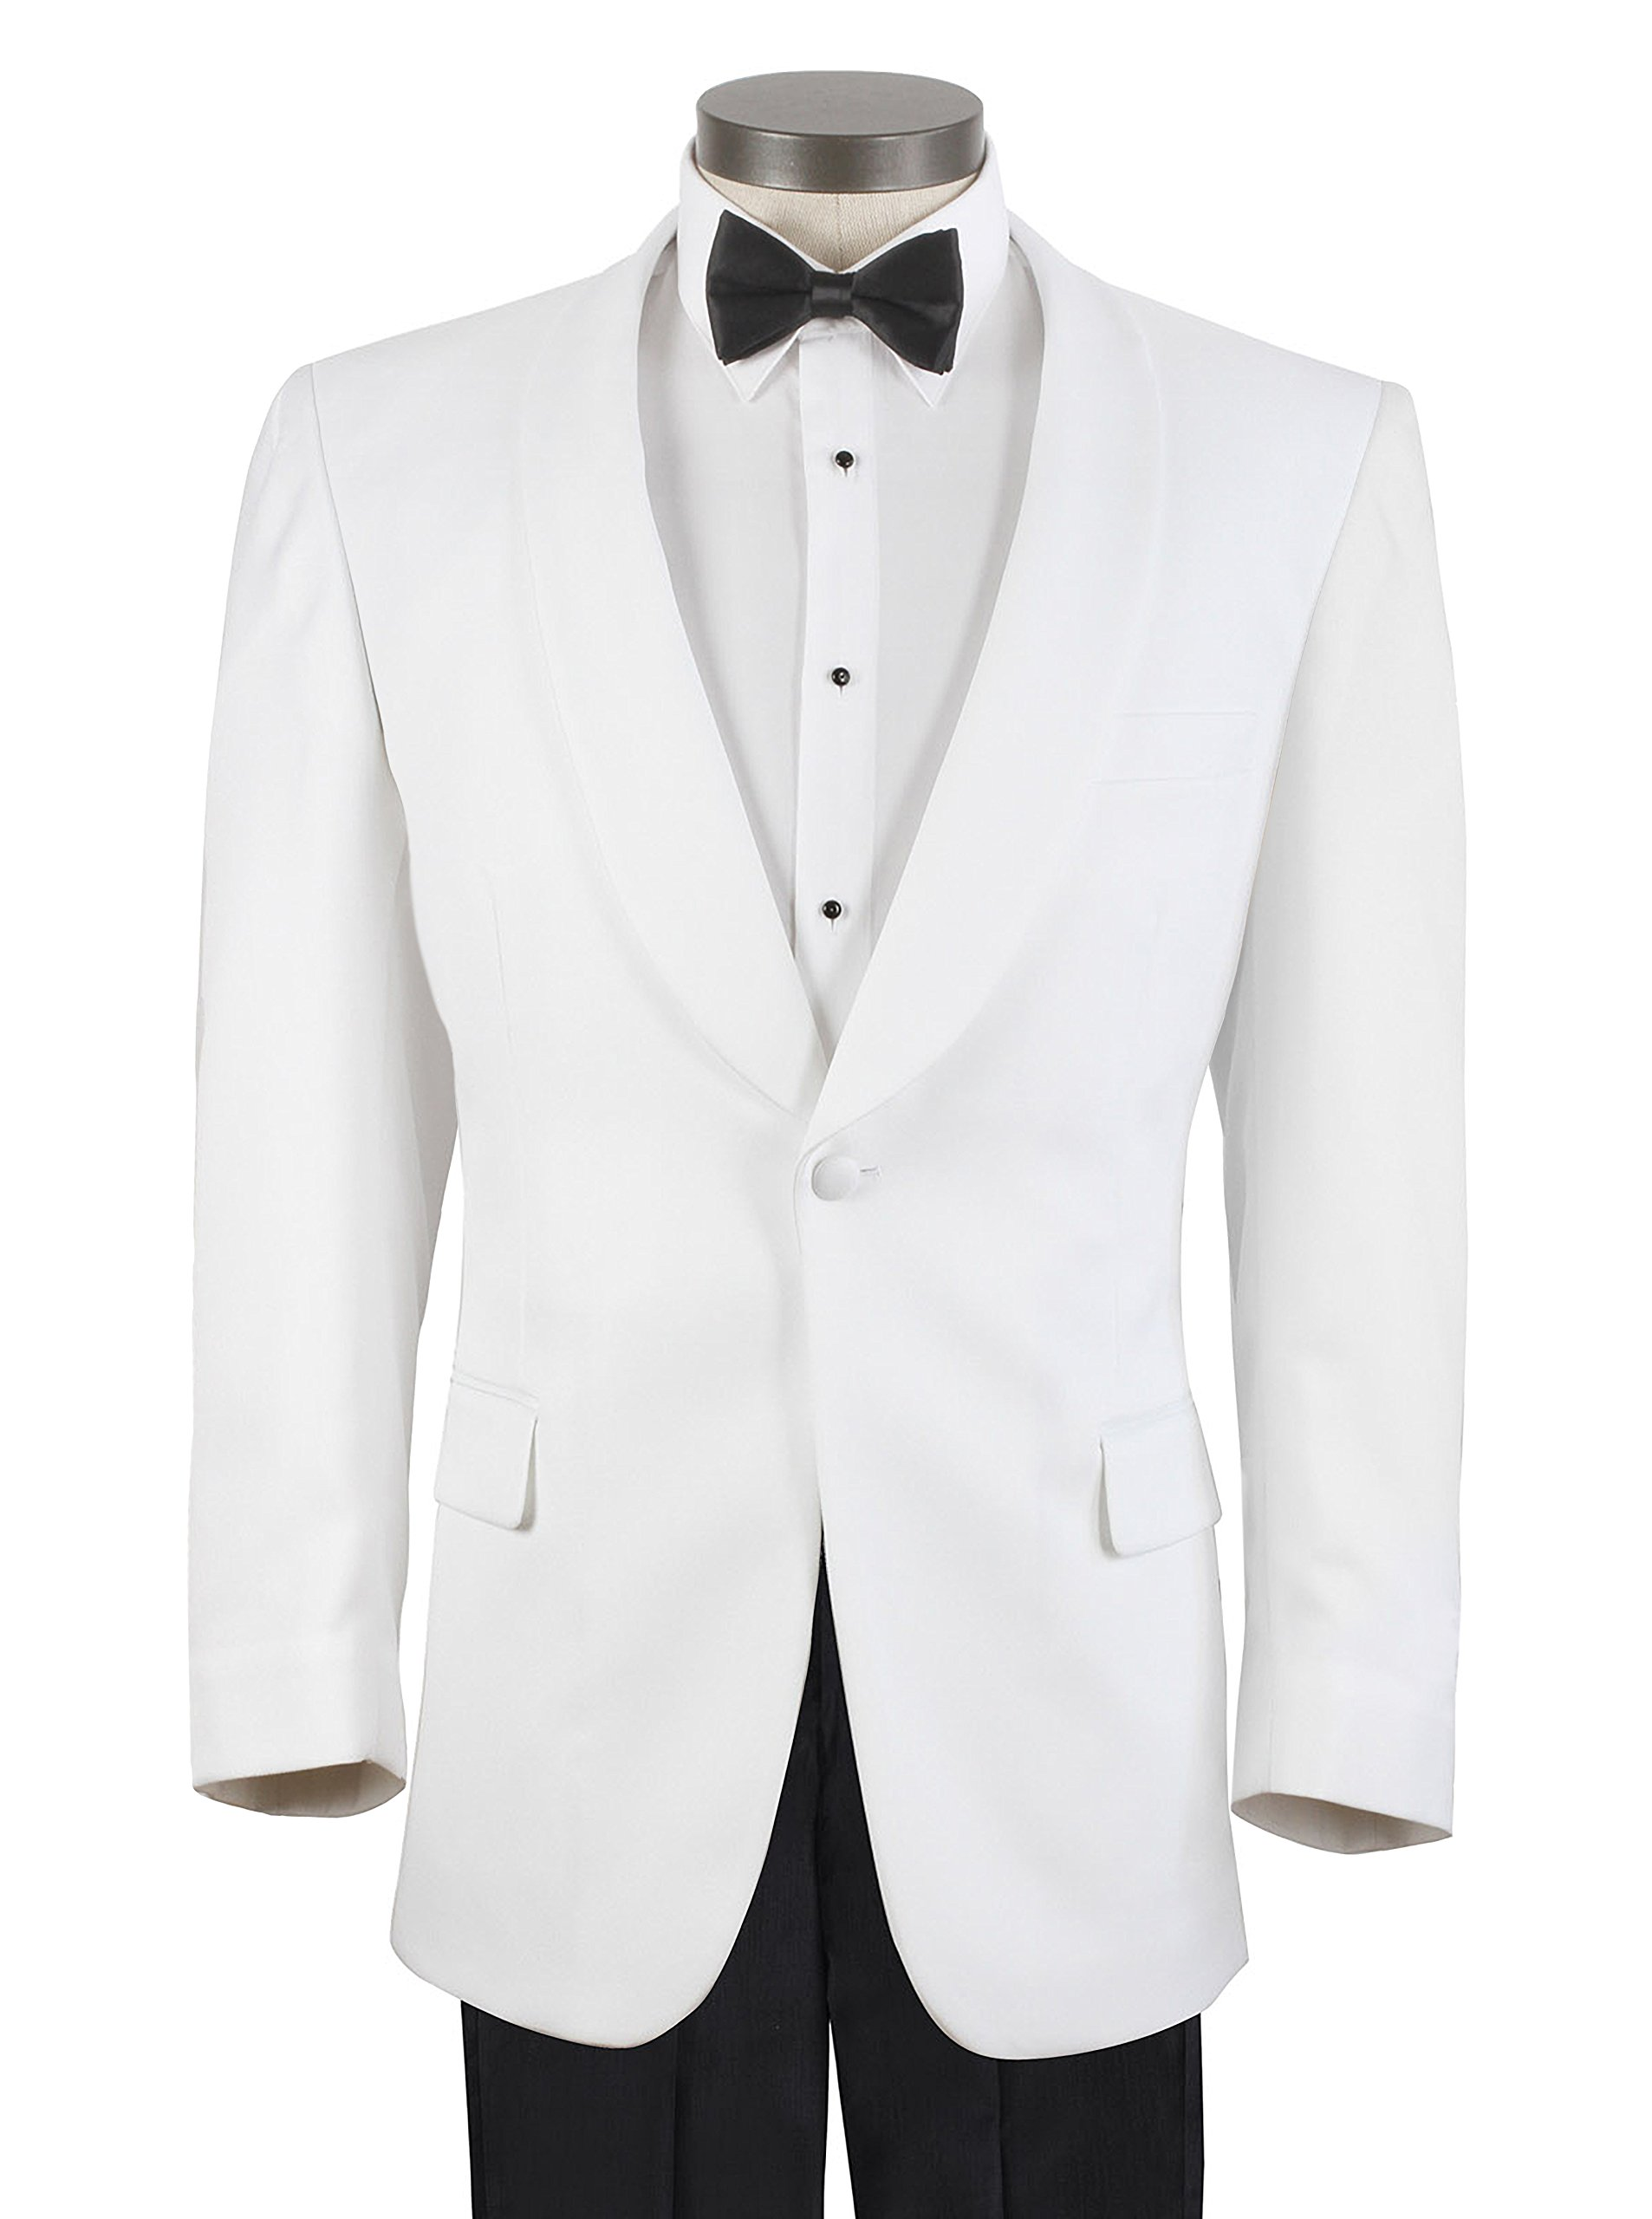 Men's White Formal Dinner Jacket - 40 Regular